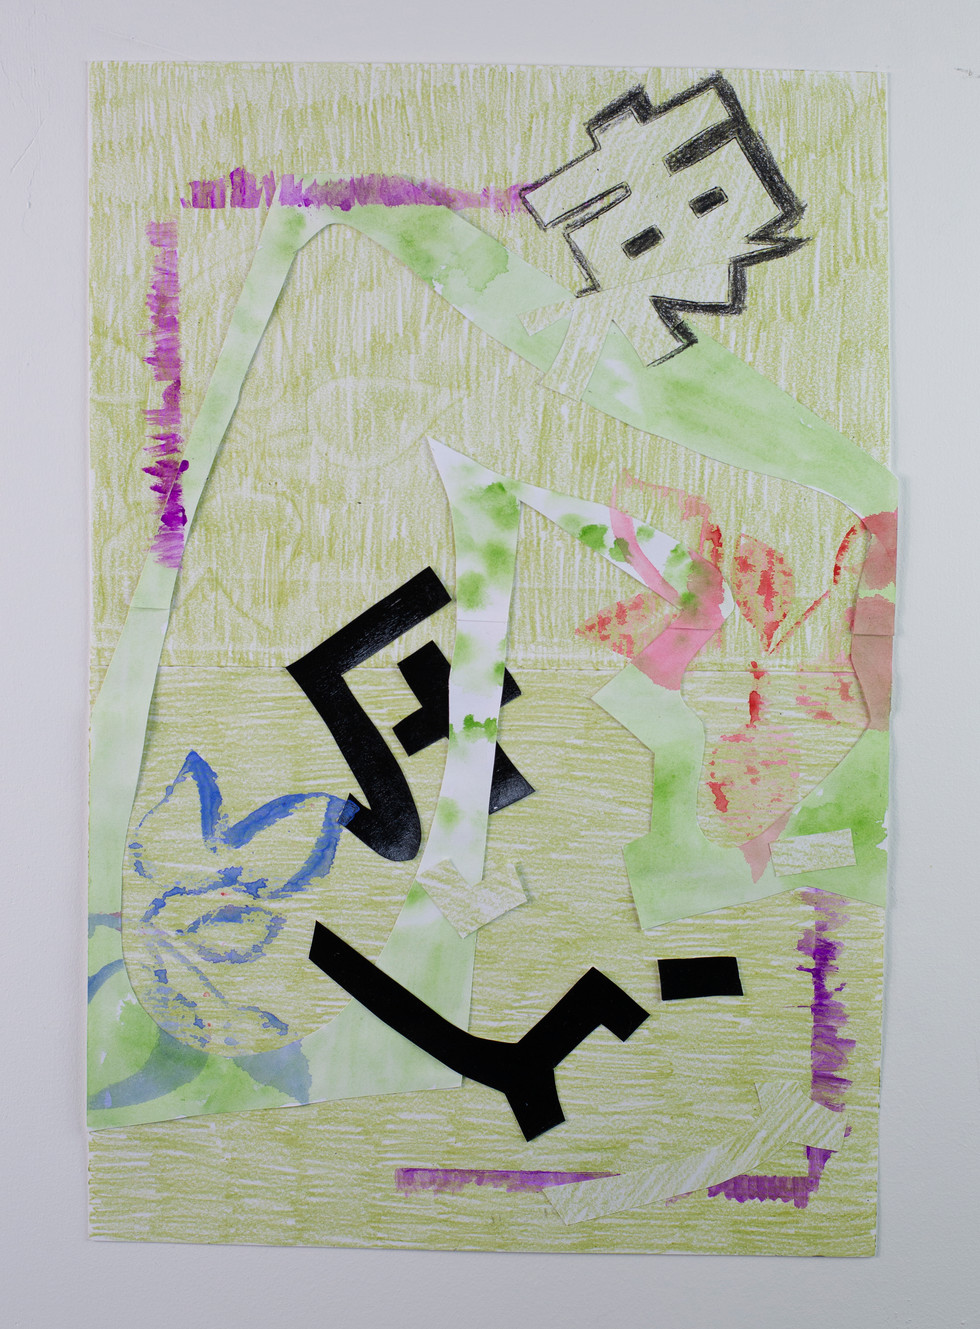 Crayon, watercolor, acrylic, acrylic gouache, paper cut outs on paper